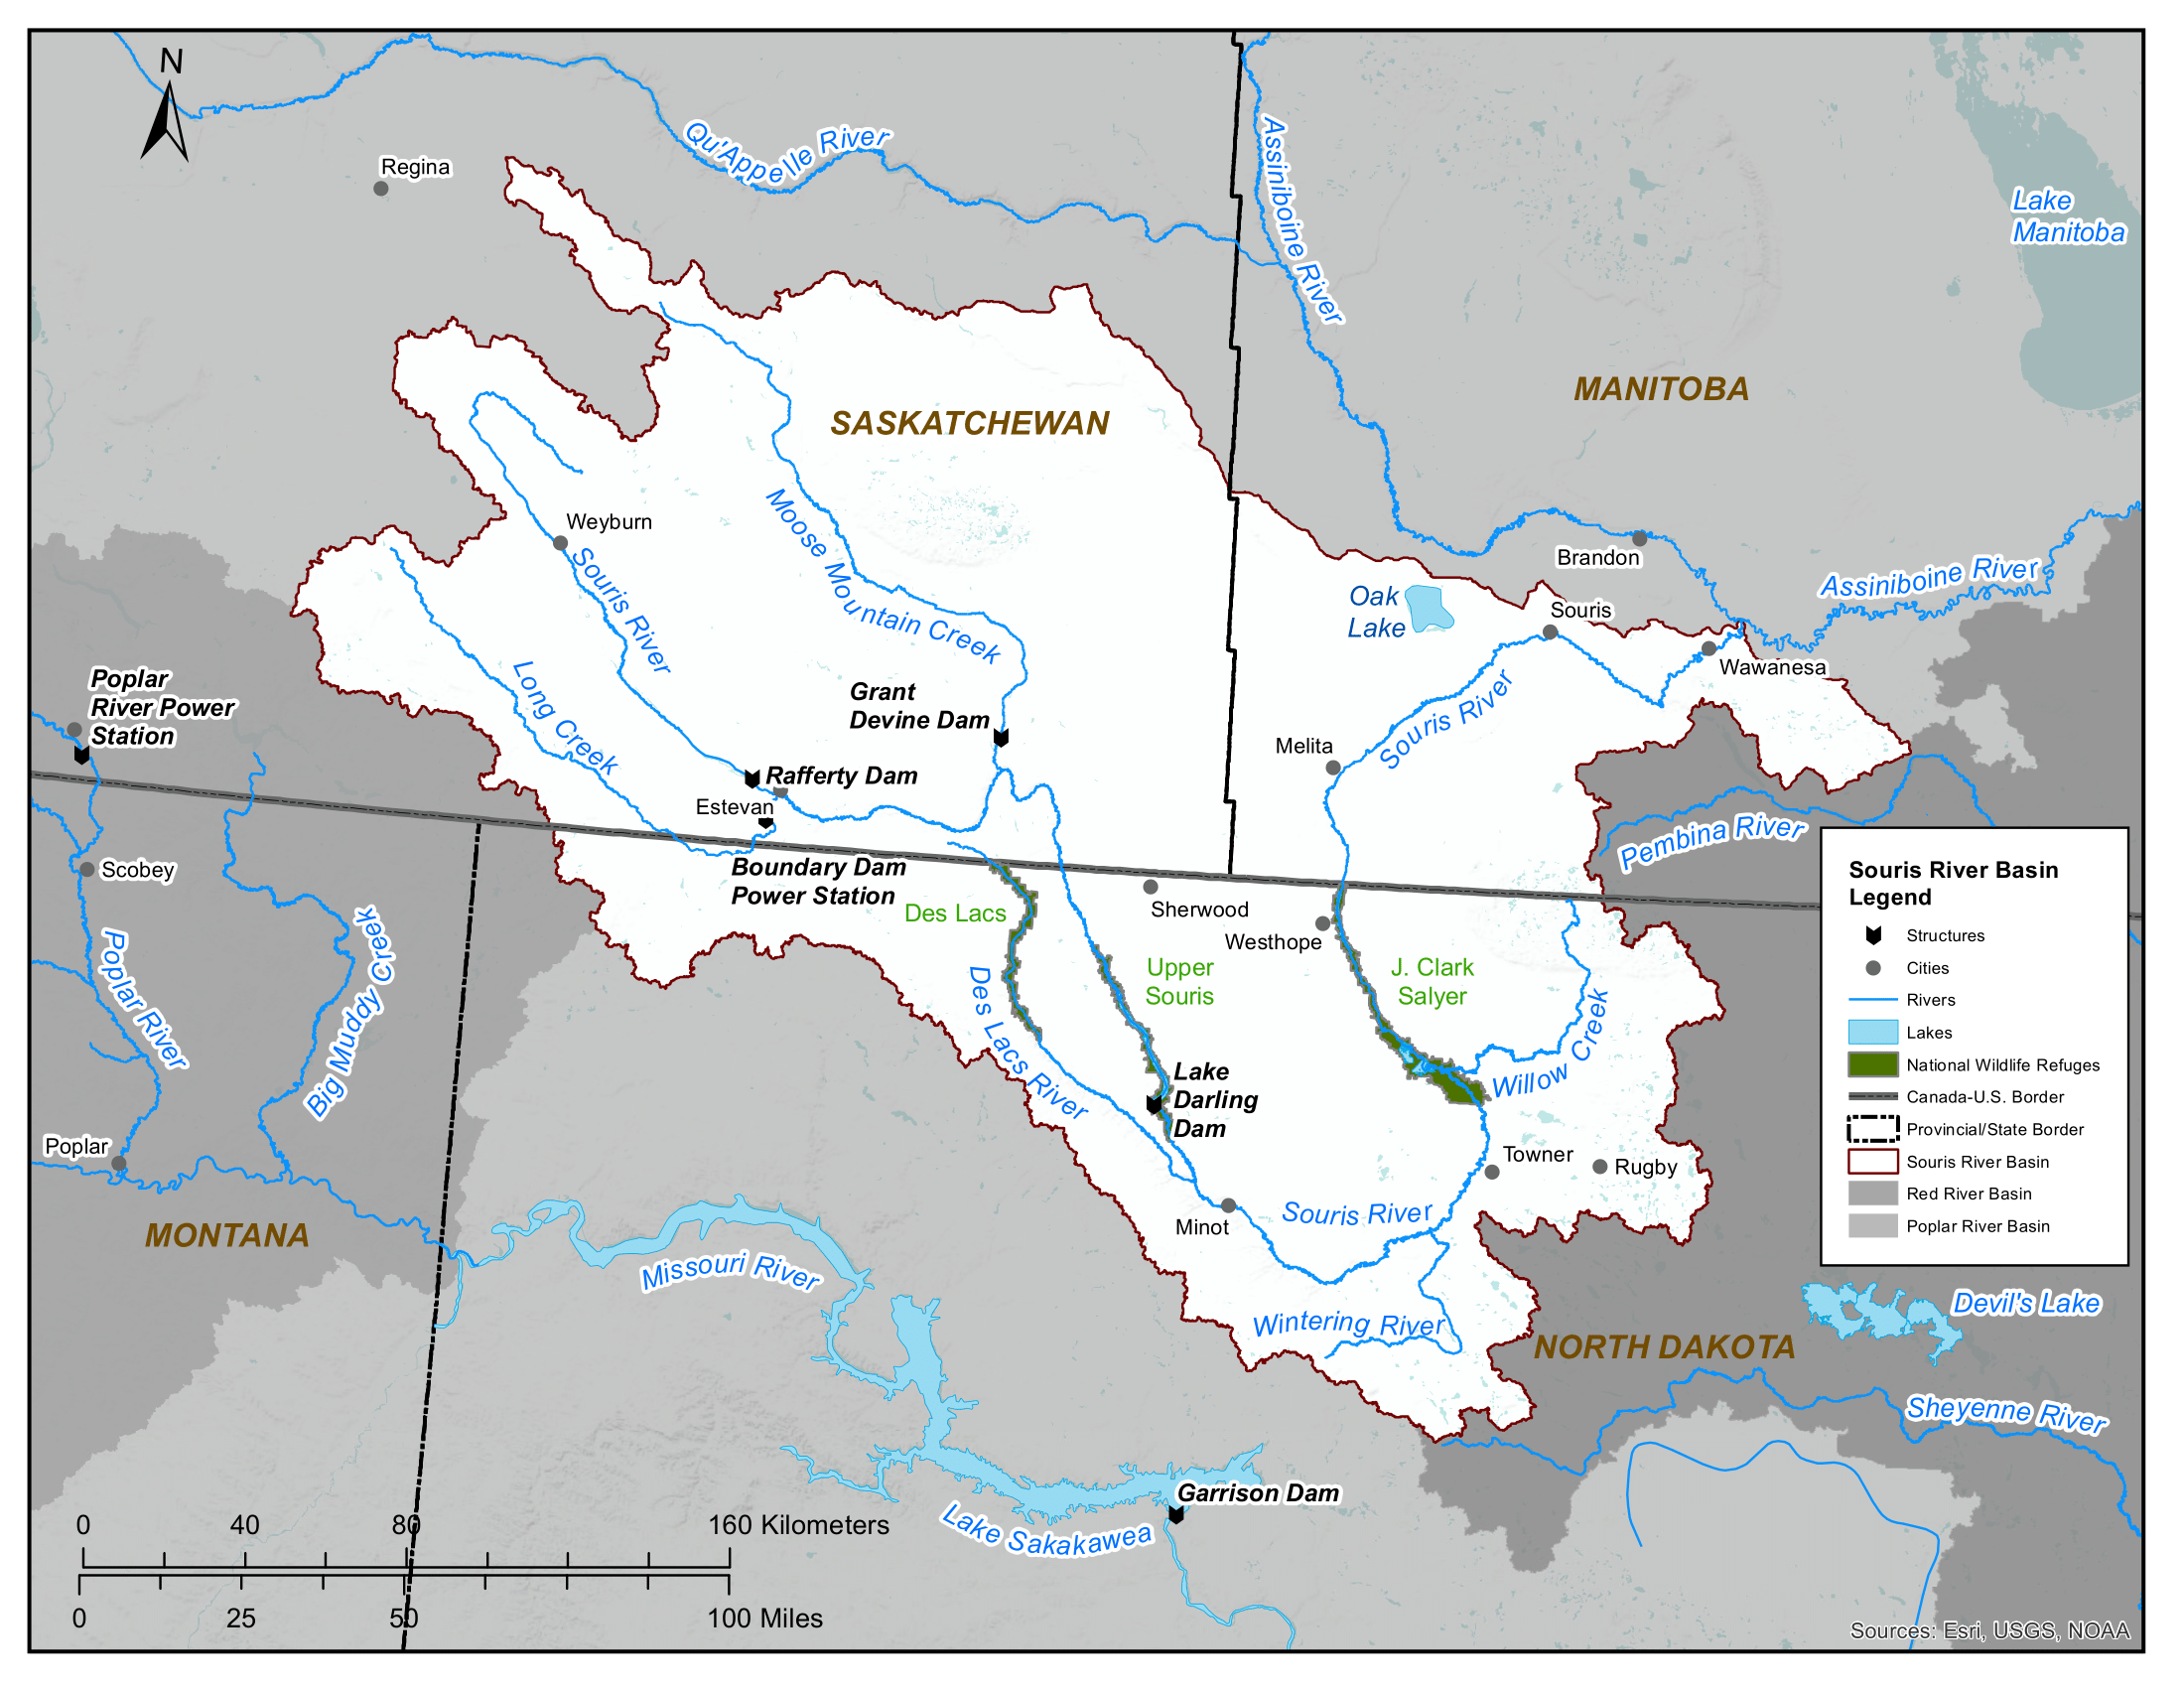 Map - Souris River Basin